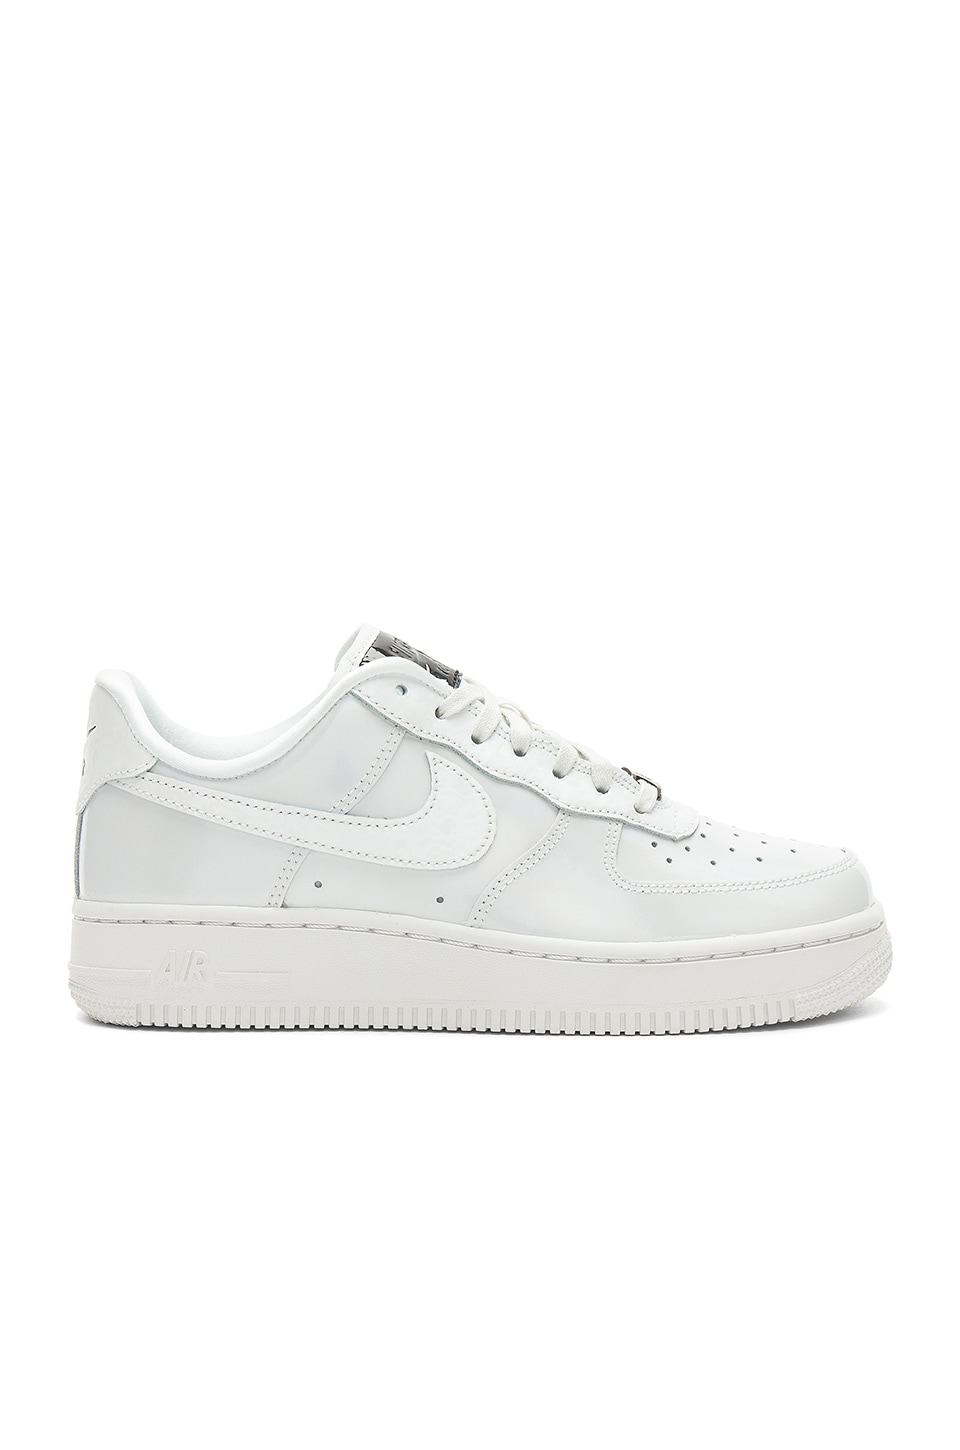 Nike Air Force 1 '07 LX in Summit White & Summit White & Black